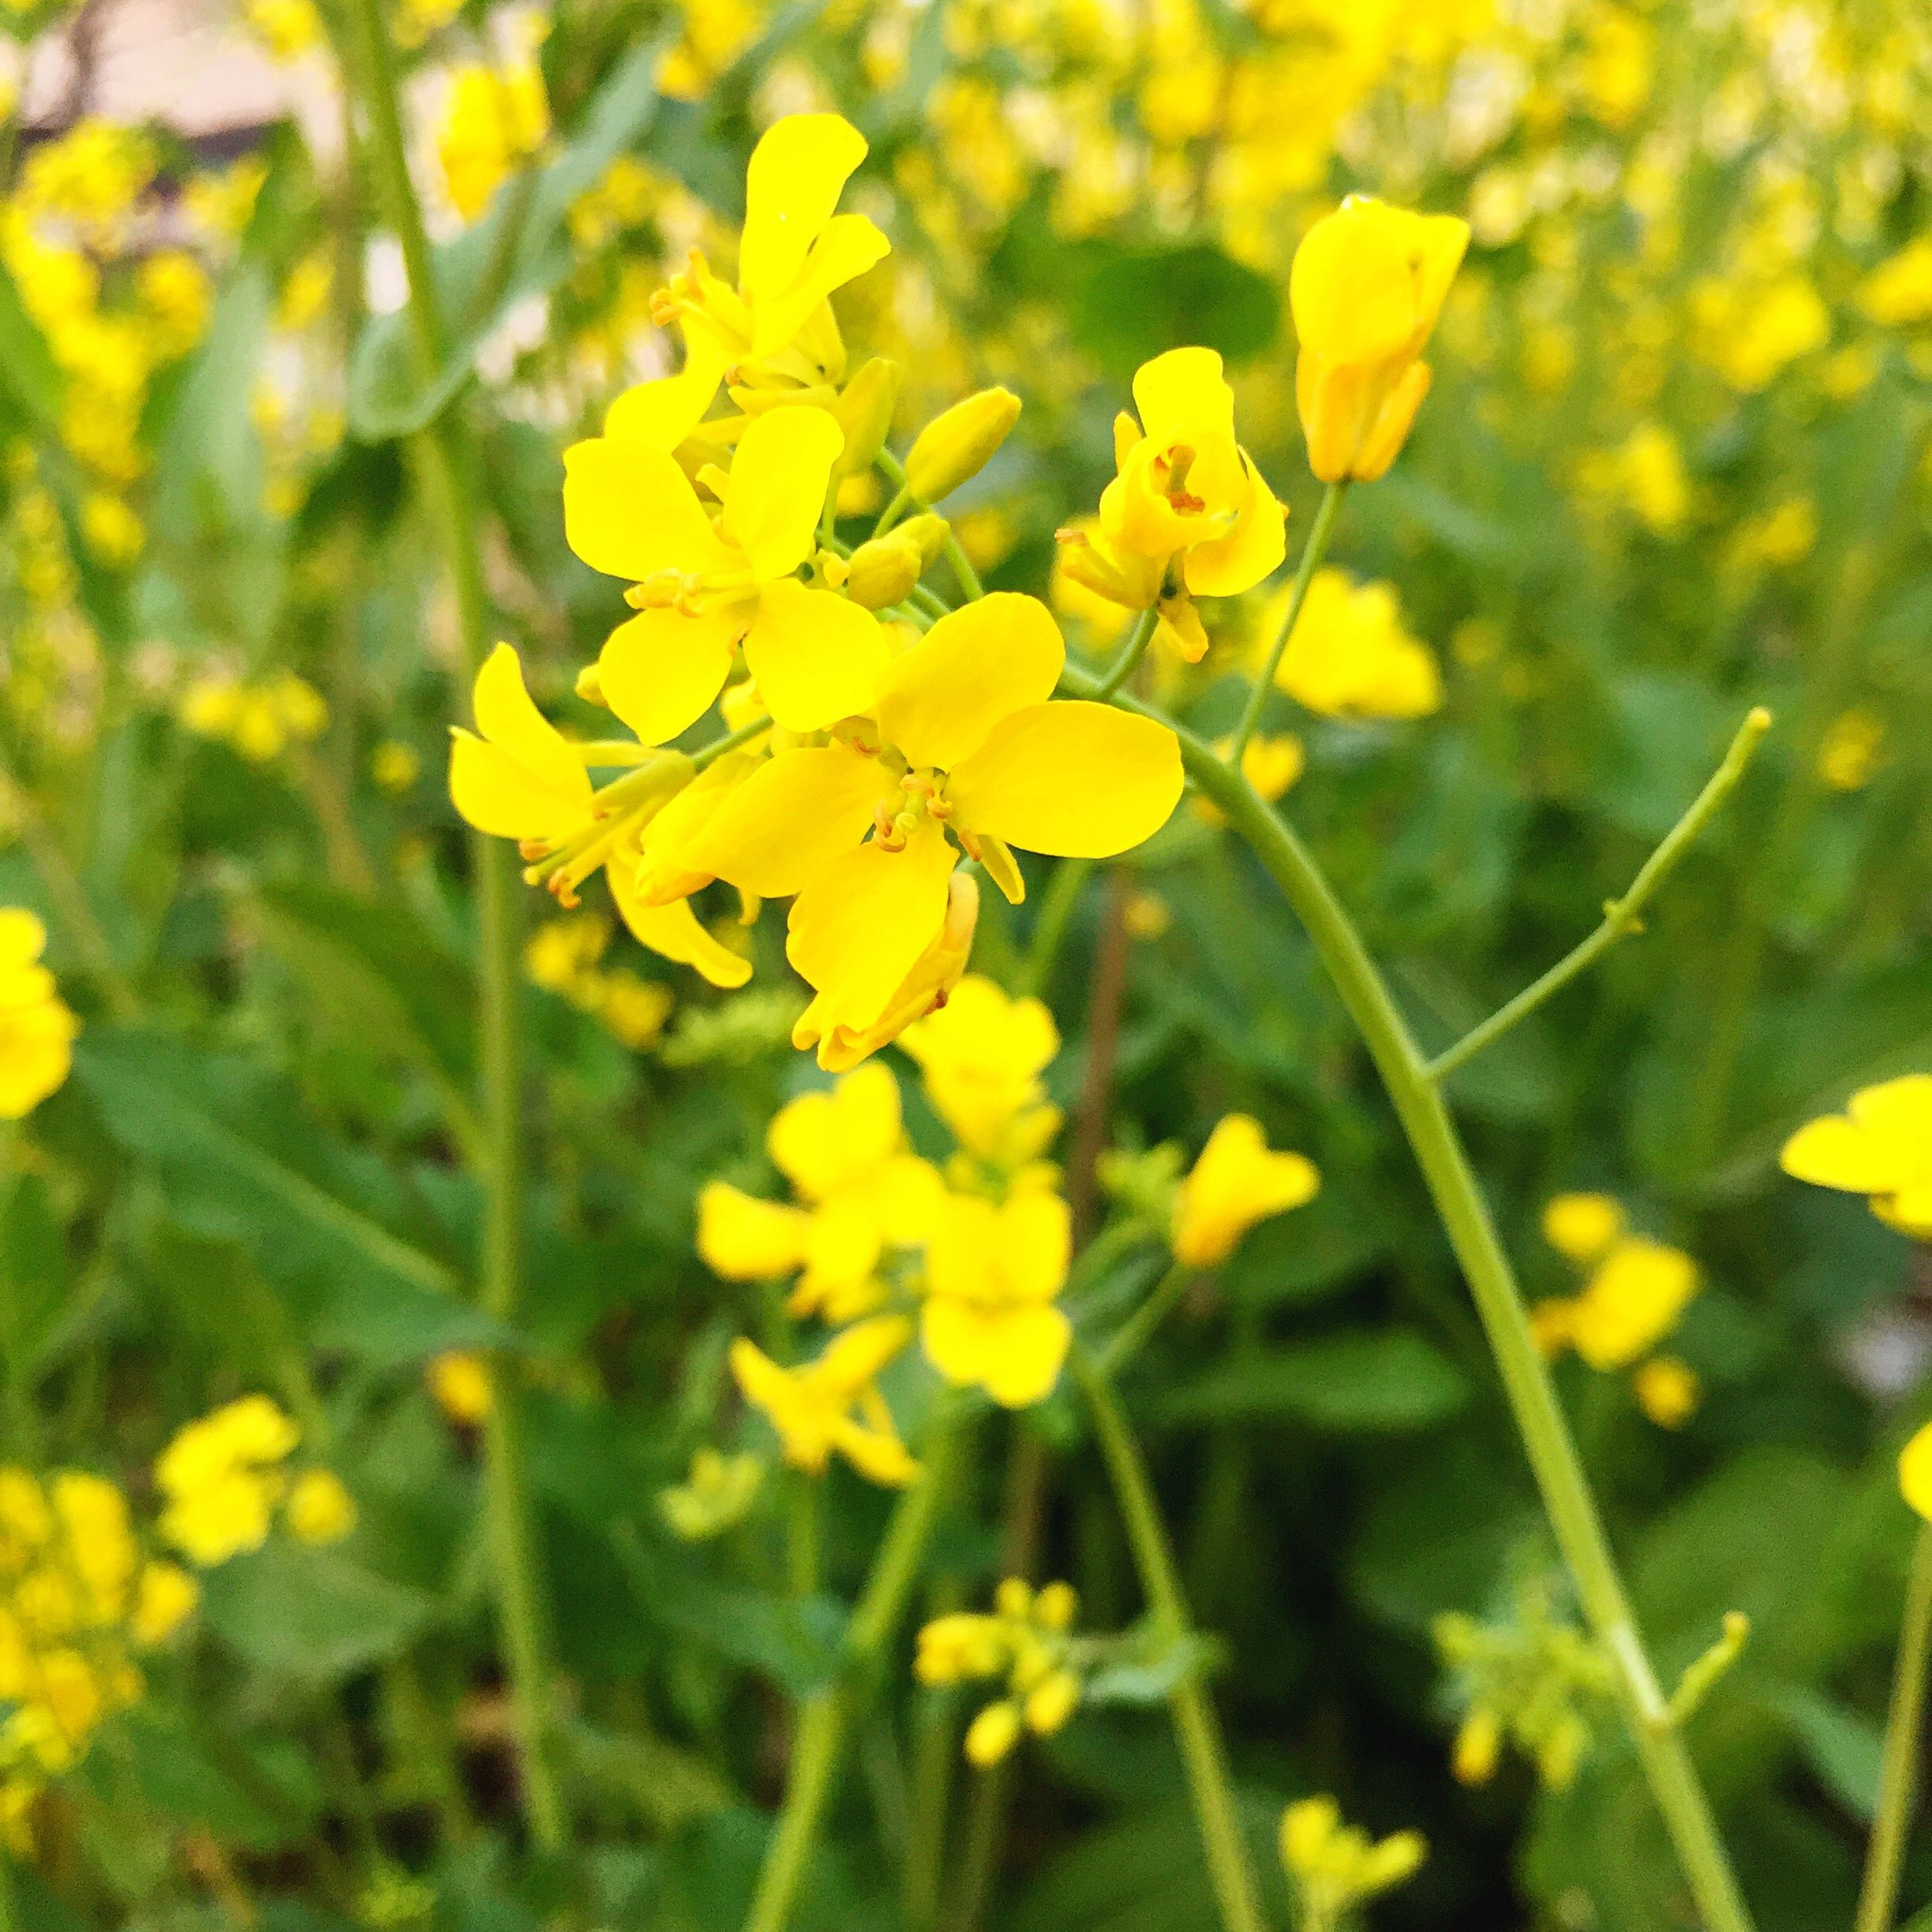 yellow, flower, growth, nature, beauty in nature, petal, plant, fragility, blooming, no people, freshness, close-up, flower head, outdoors, day